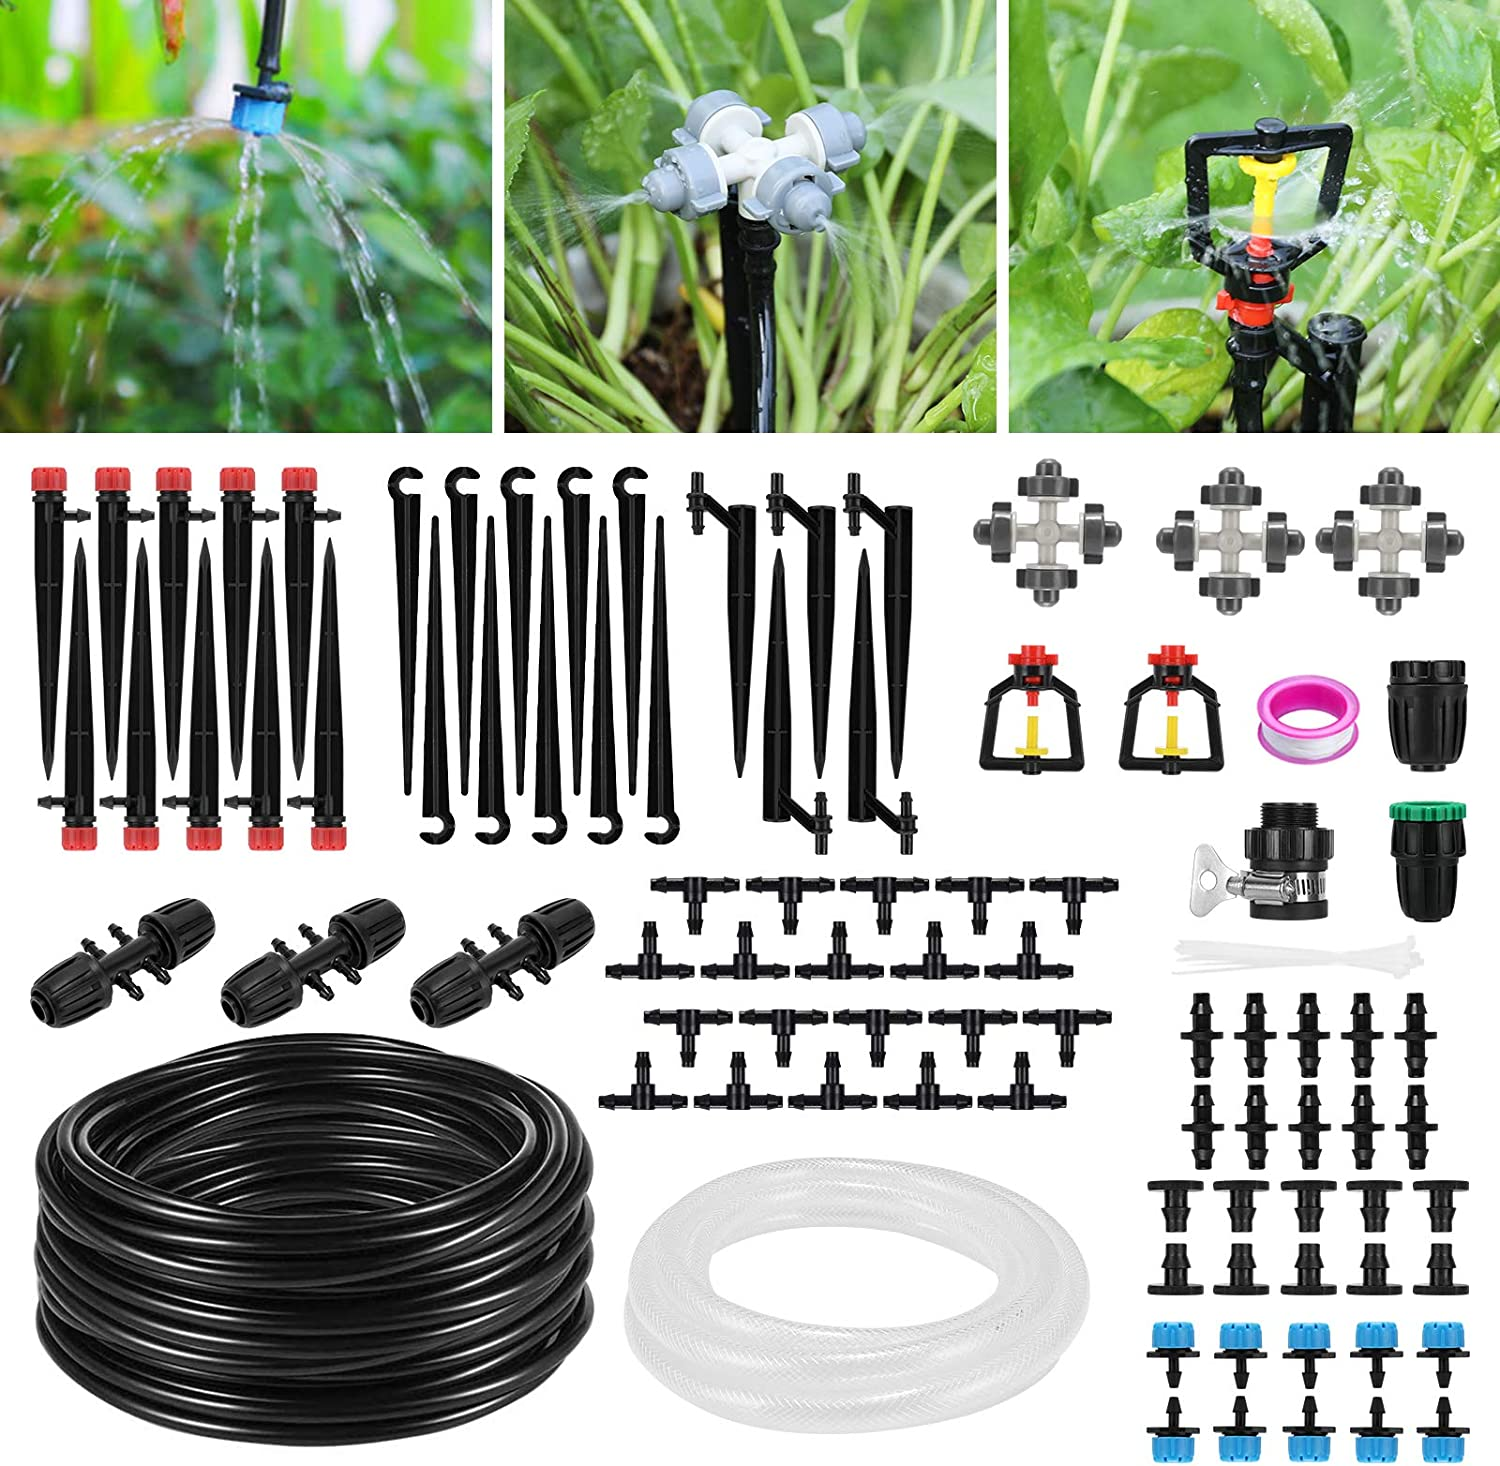 Drip Irrigation Kit, Homga 130ft/40M Plant Watering System, Automatic Garden Irrigation with Extra 10ft Main Line and Adjustable Sprinkler Nozzles for Lawn Greenhouse